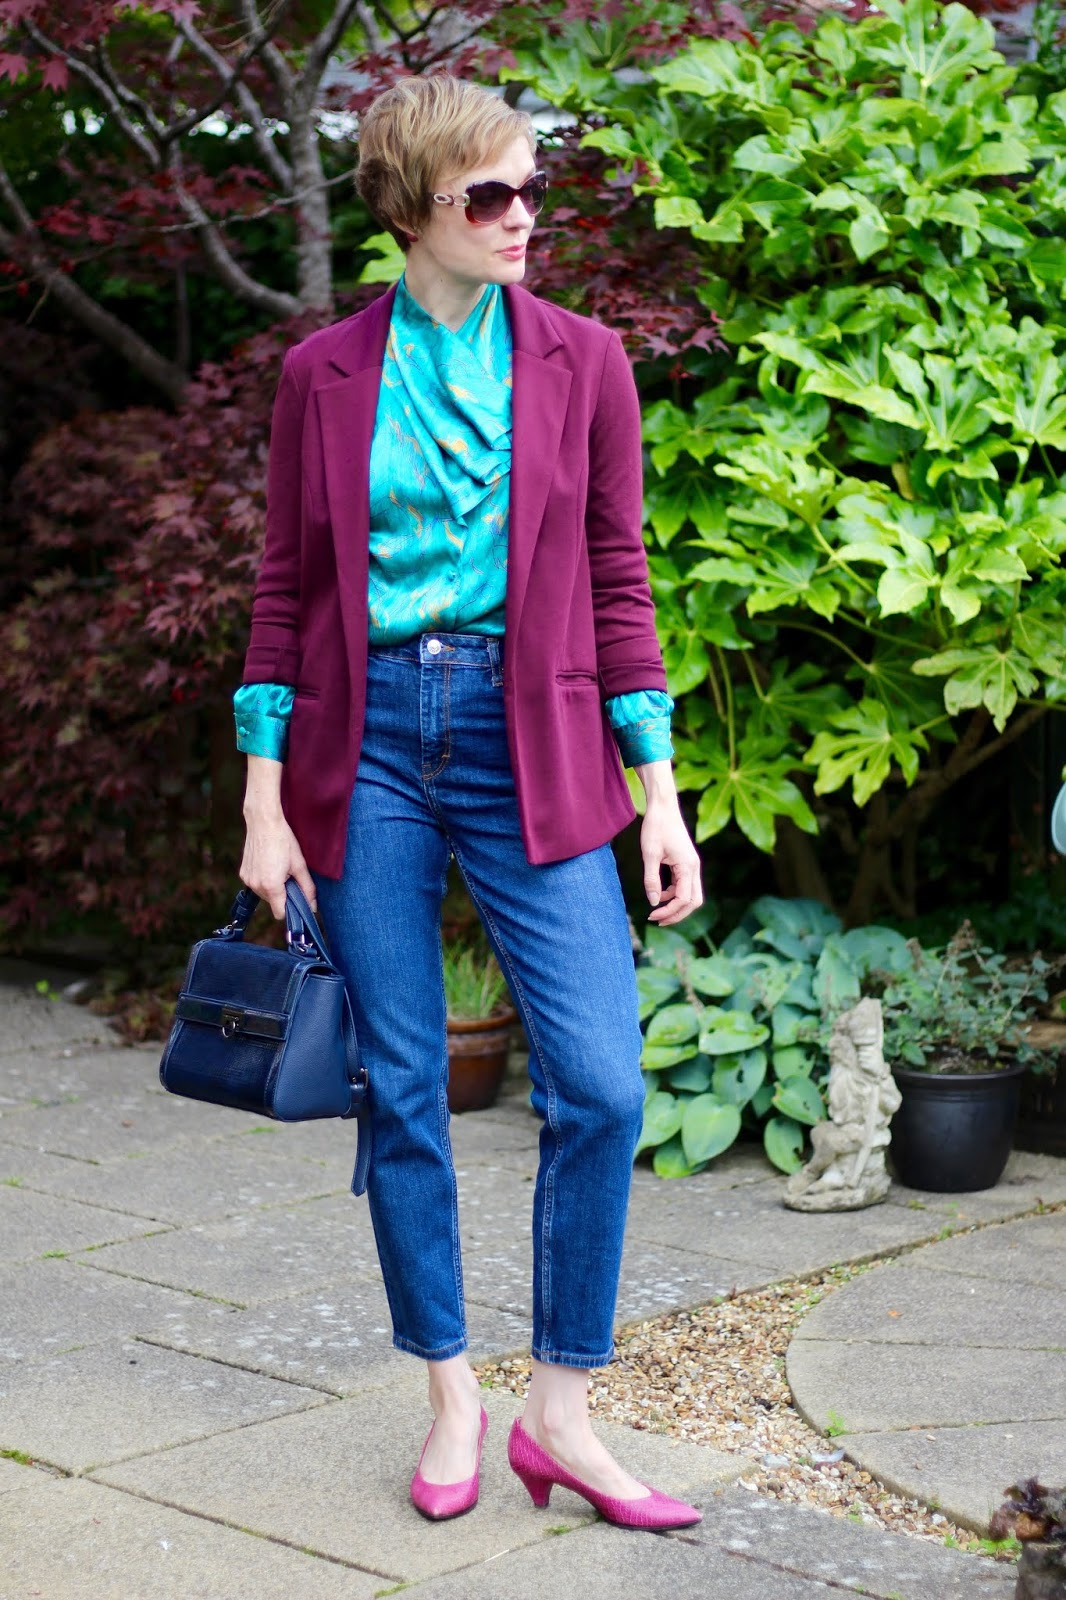 Vintage green blouse, oxblood blazer, topshop orson jeans and pink pumps.